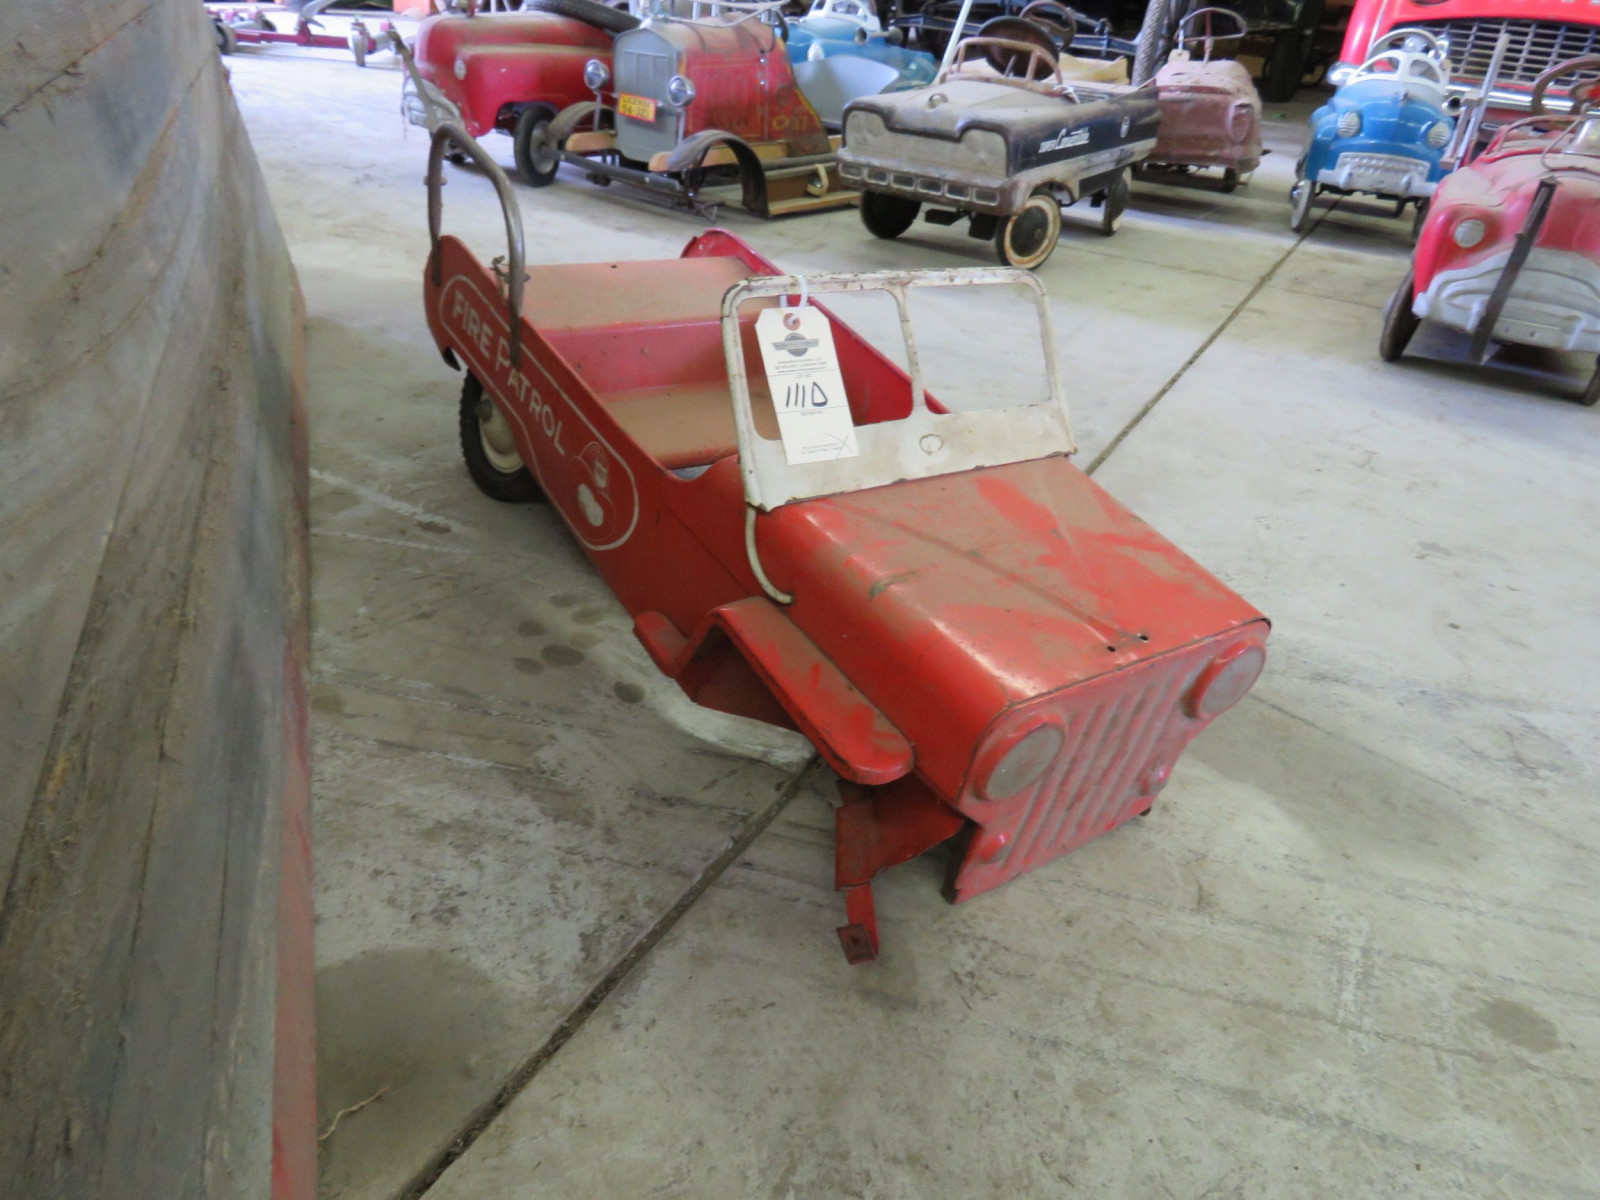 Murray Atkins Fire Chief Pedal Car for Restore - Image 2